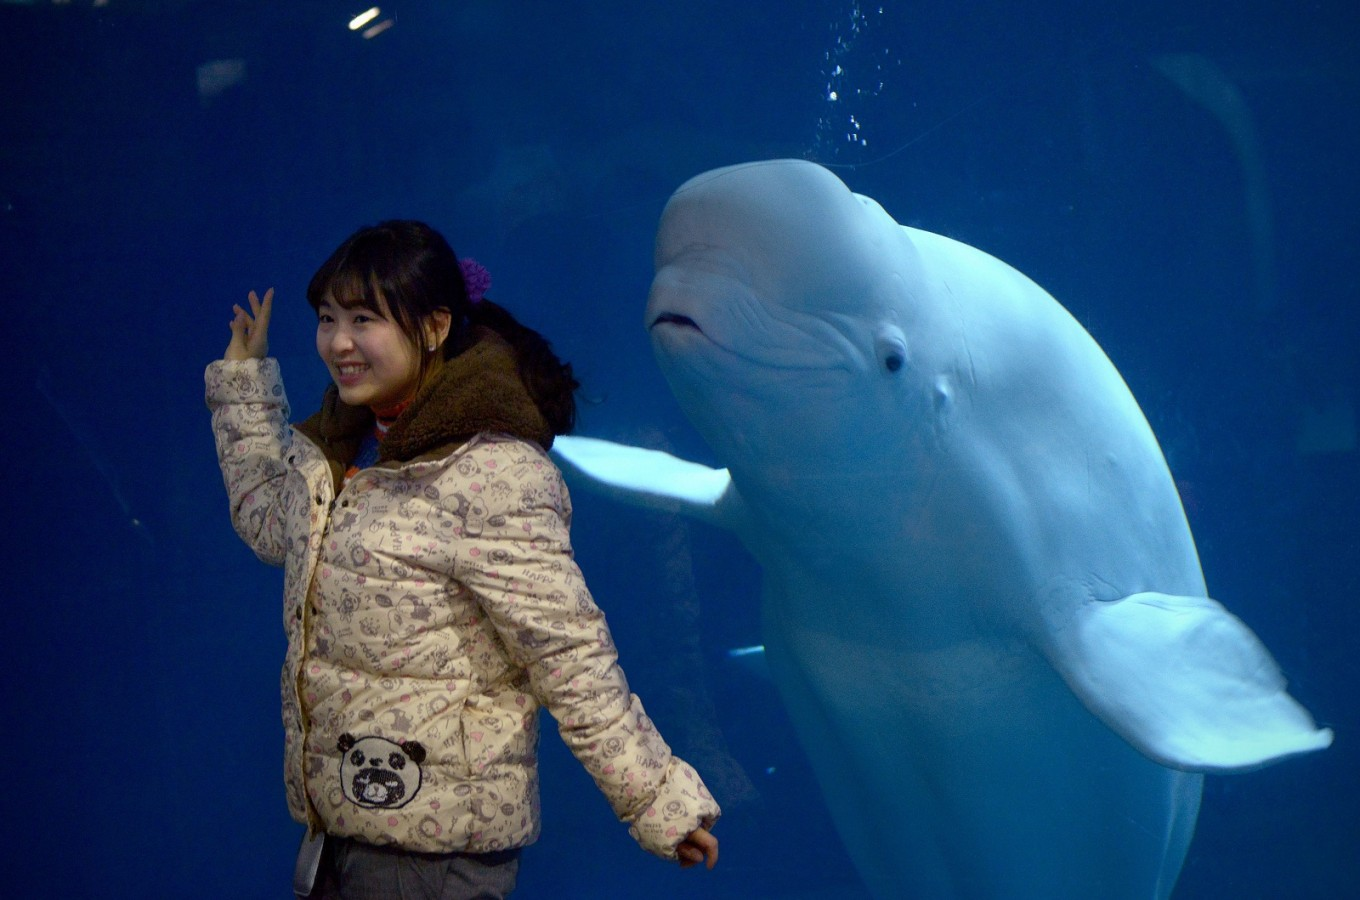 Captive whales find new home as aquarium shows decline